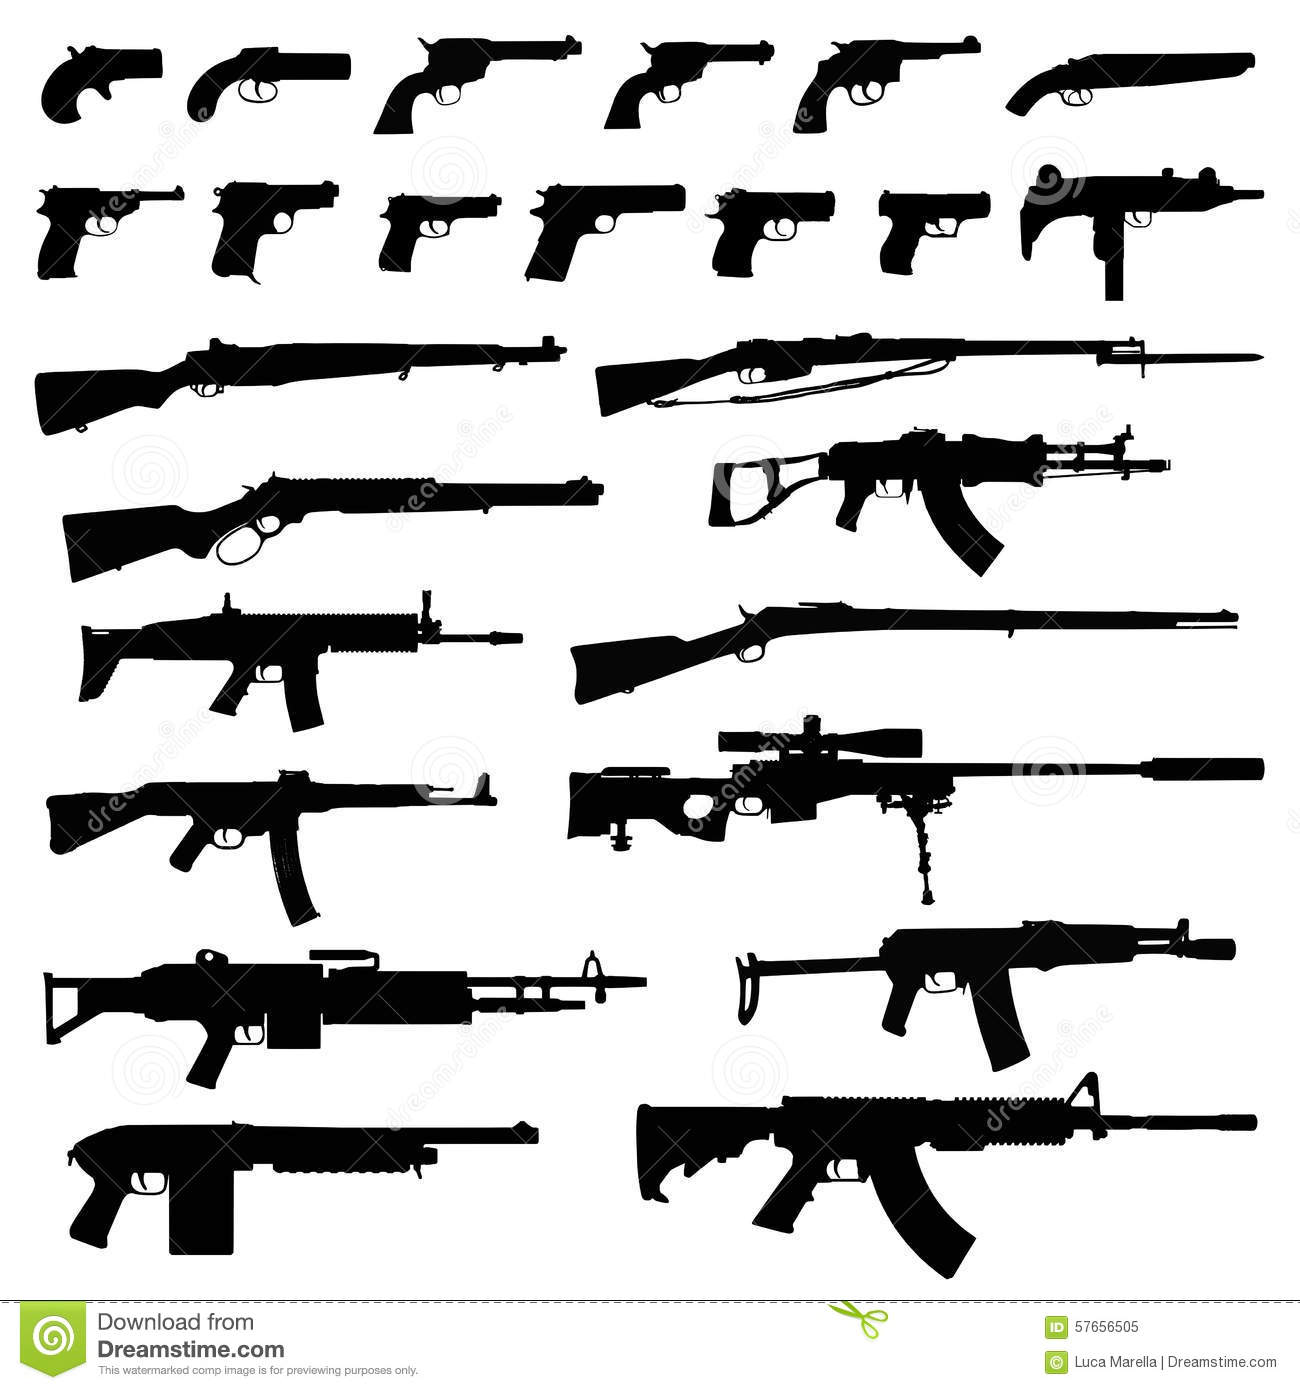 likewise Adult Coloring Pages Free in addition Easy likewise 84 further Stock Illustration Weapons Silhouettes Set White Background Various Design Guns Rifles Assault Rifle Machine Gun Kalashnikov Many Others Image57656505. on scary dog names